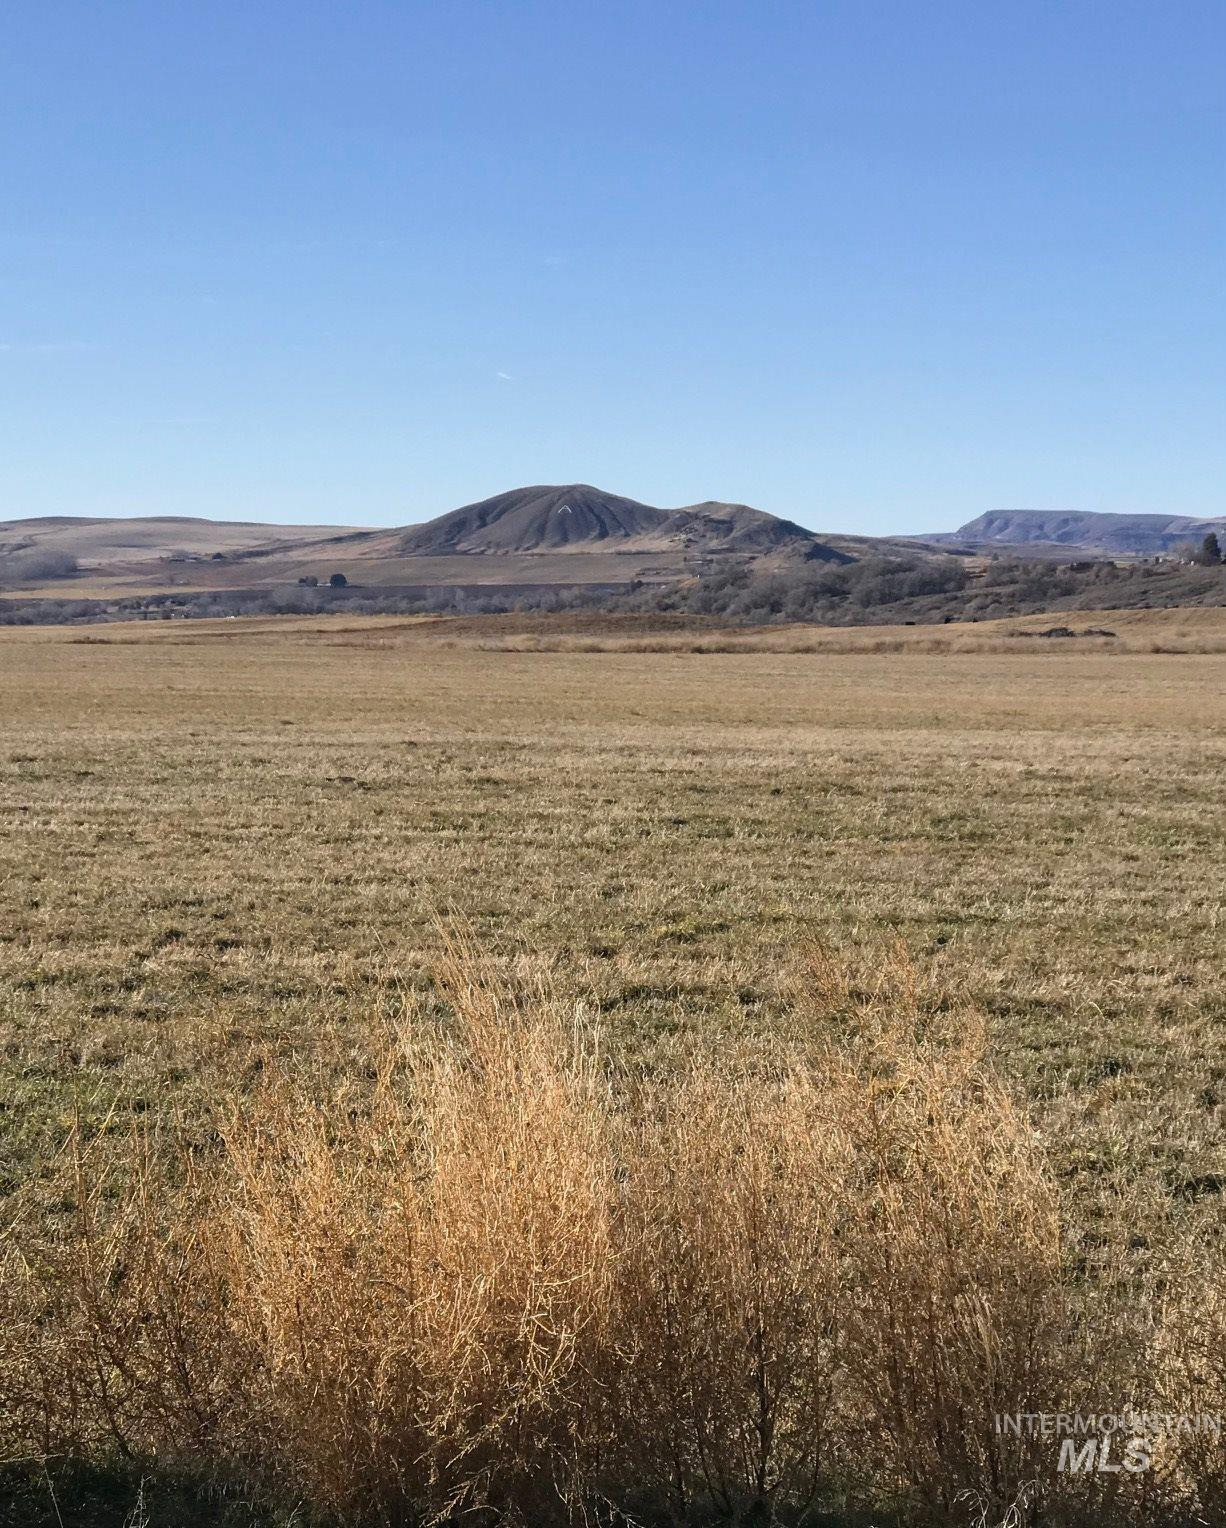 TBD 7A Drum Lane, Parma, Idaho 83660-0000, Land For Sale, Price $175,000, 98790745